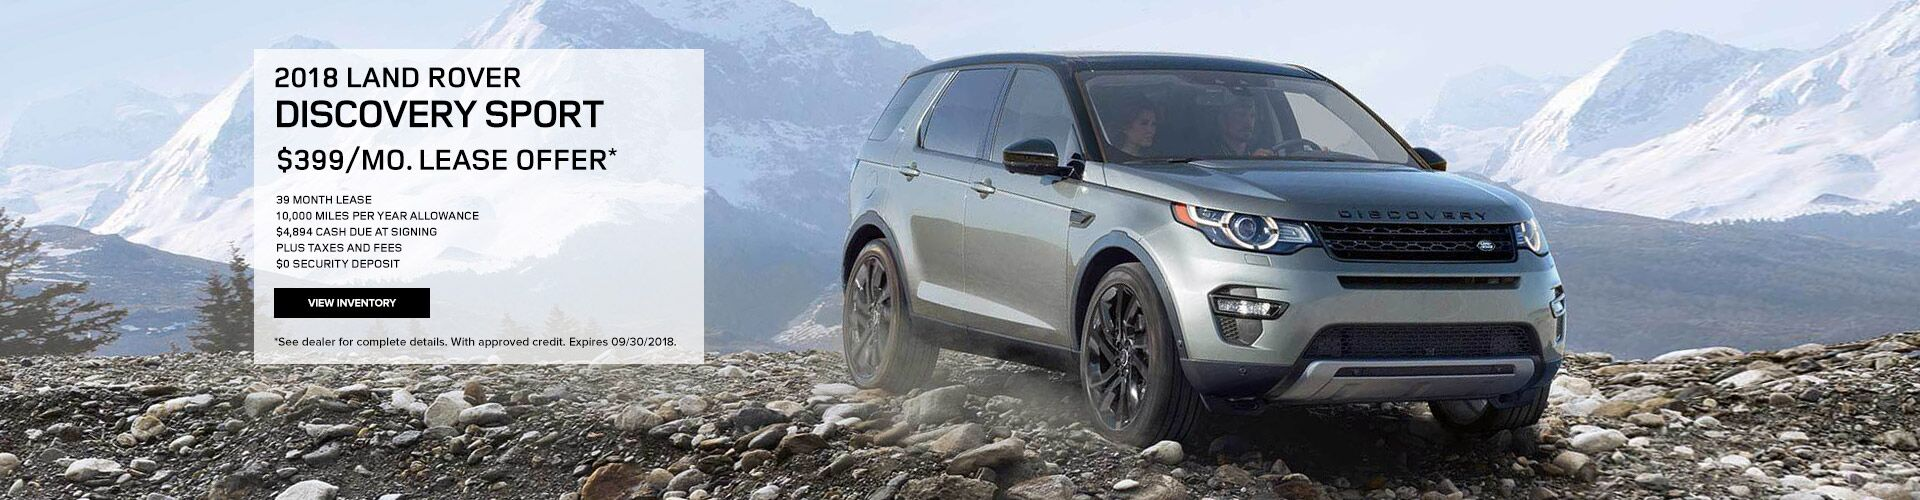 2018 LR Discovery Sport